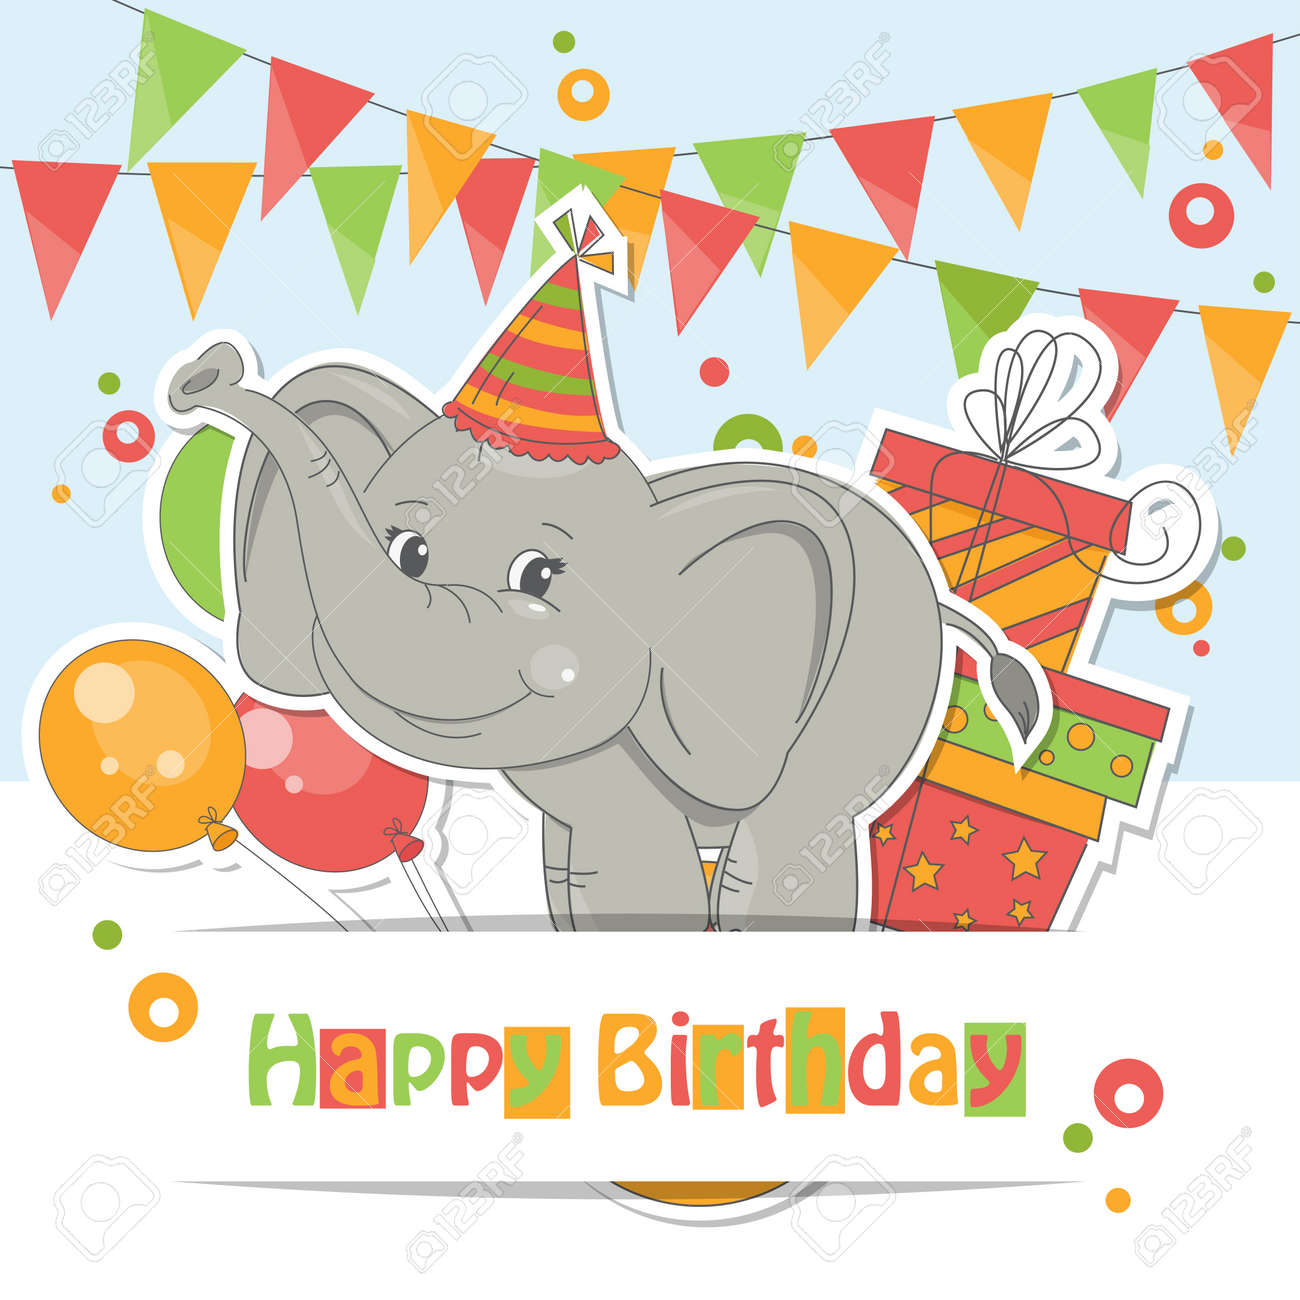 Happy Birthday Card Colorful Illustration Of Cute Little Elephant Air Balloons Gift And